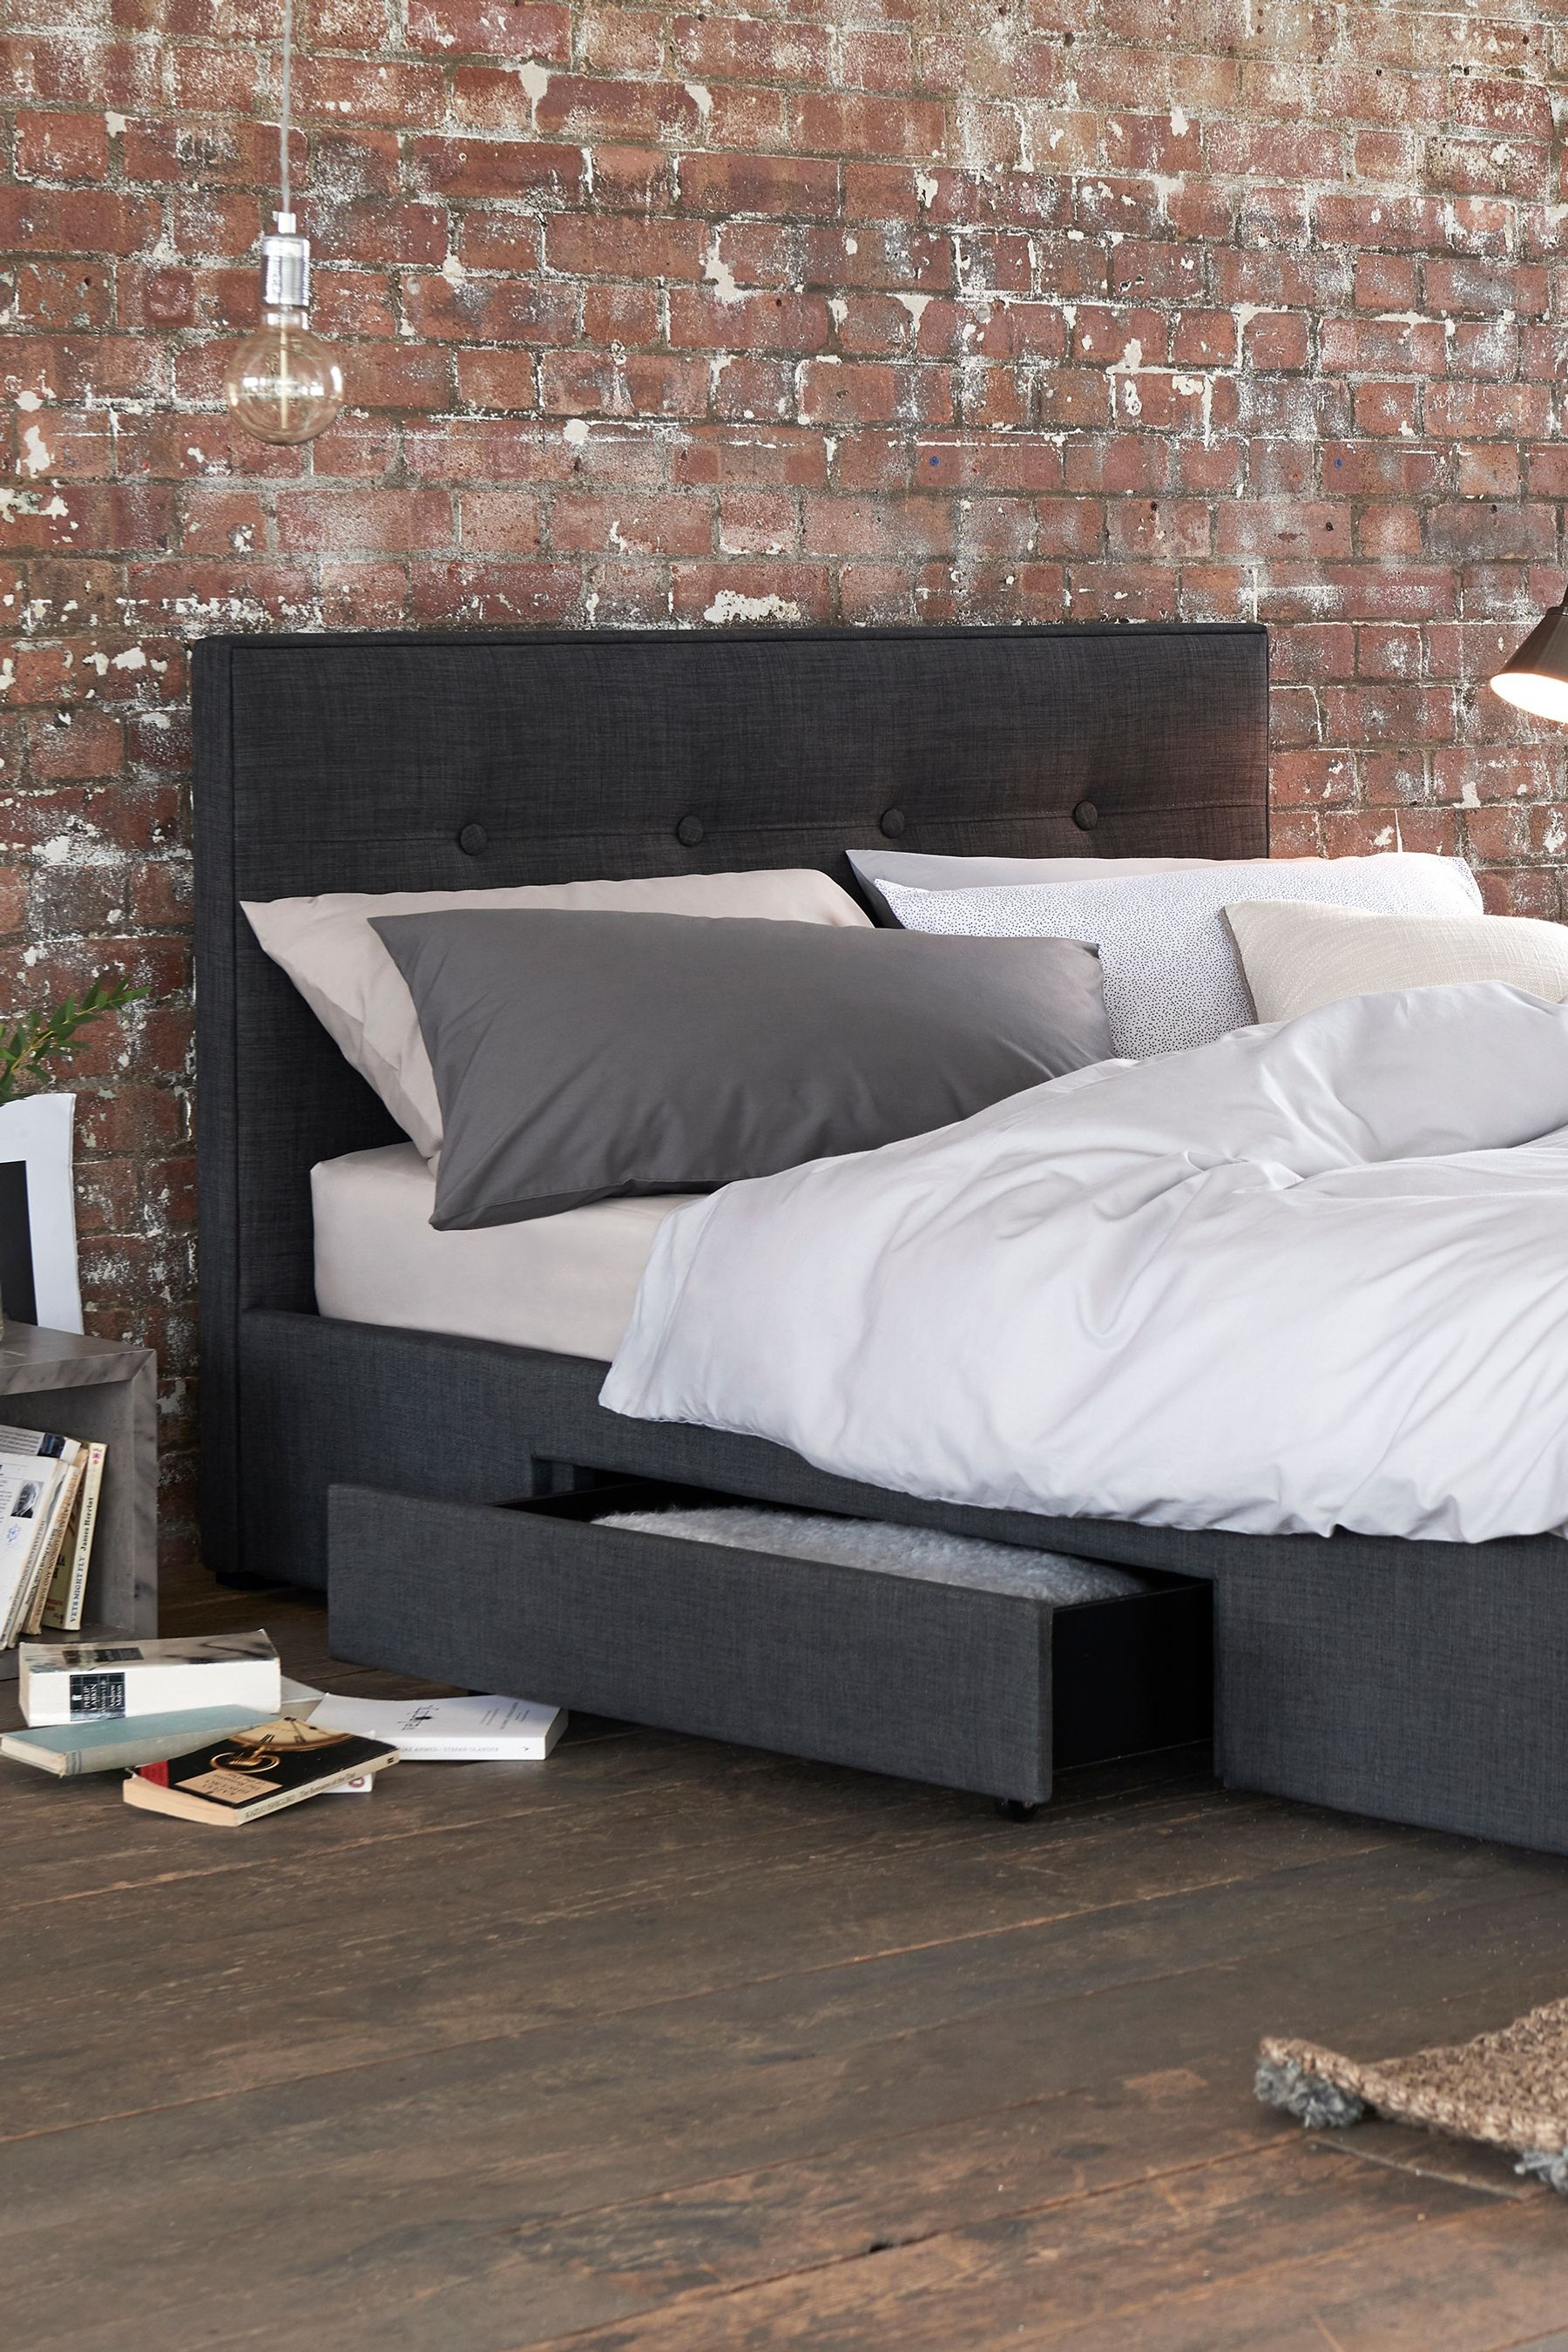 Compare retail prices of 2 Drawer Bedstead Studio Collection By Next to get the best deal online